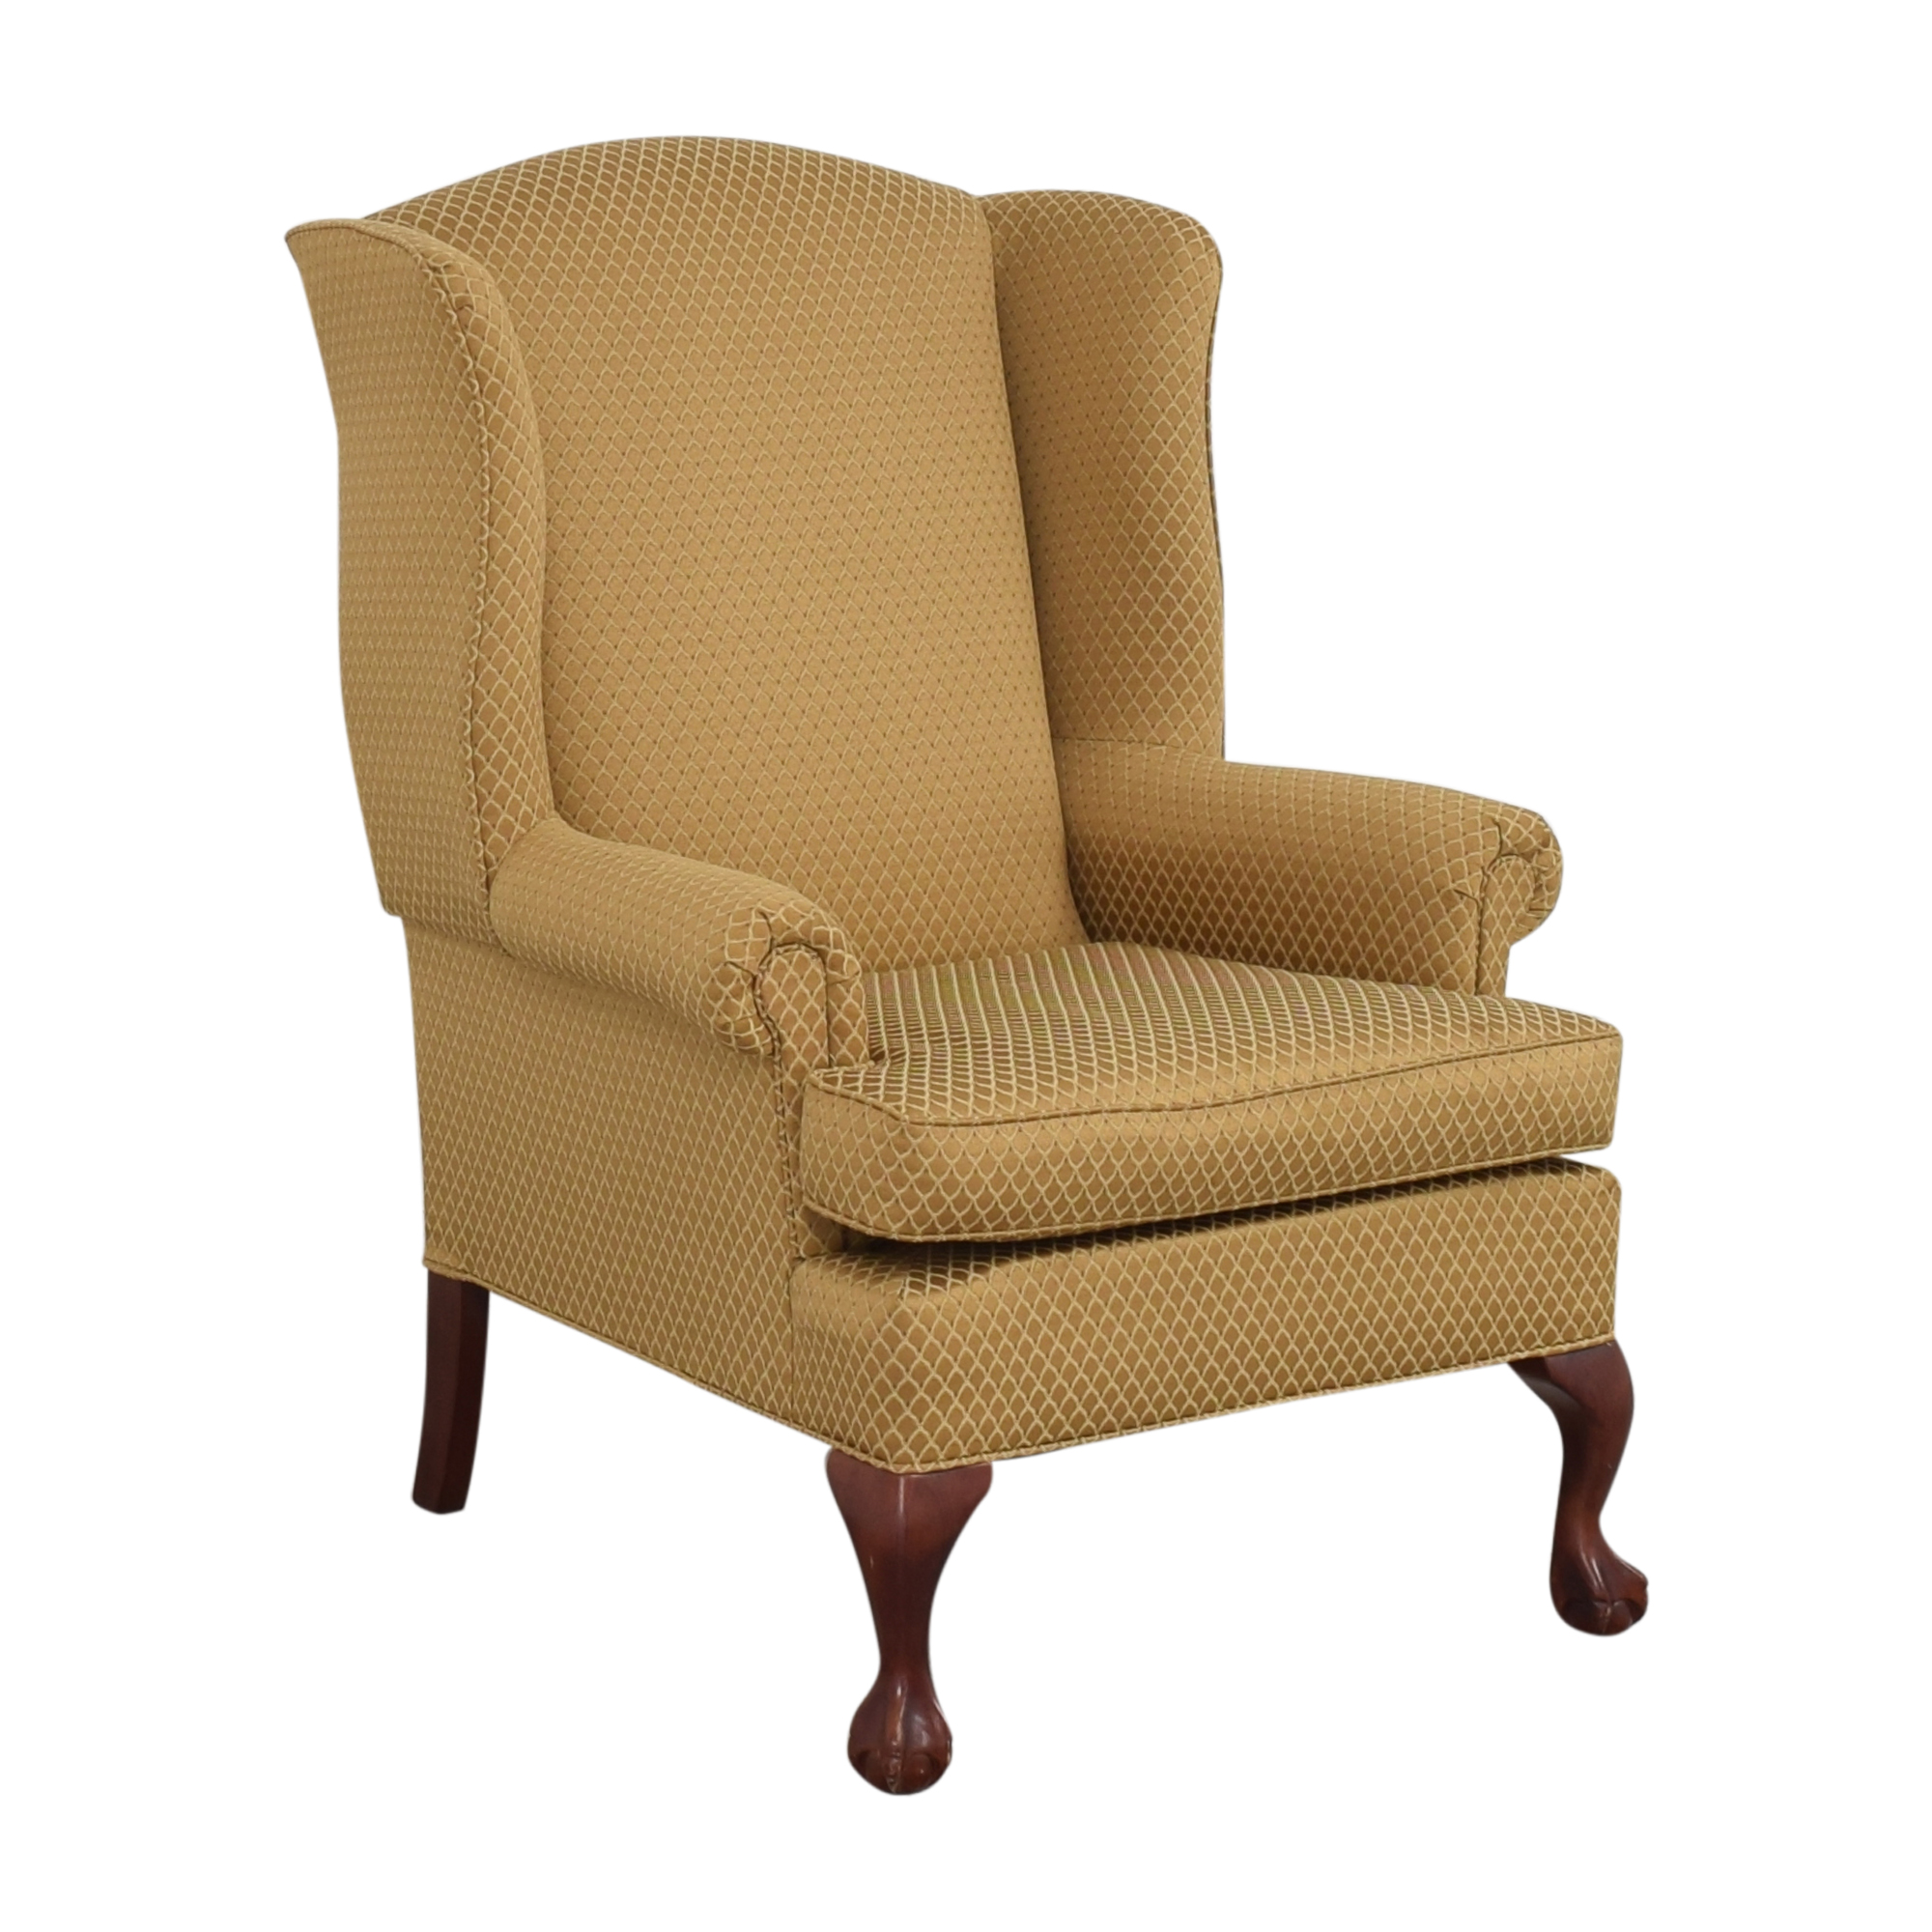 Best Chairs Best Chairs Wingback Chair ct